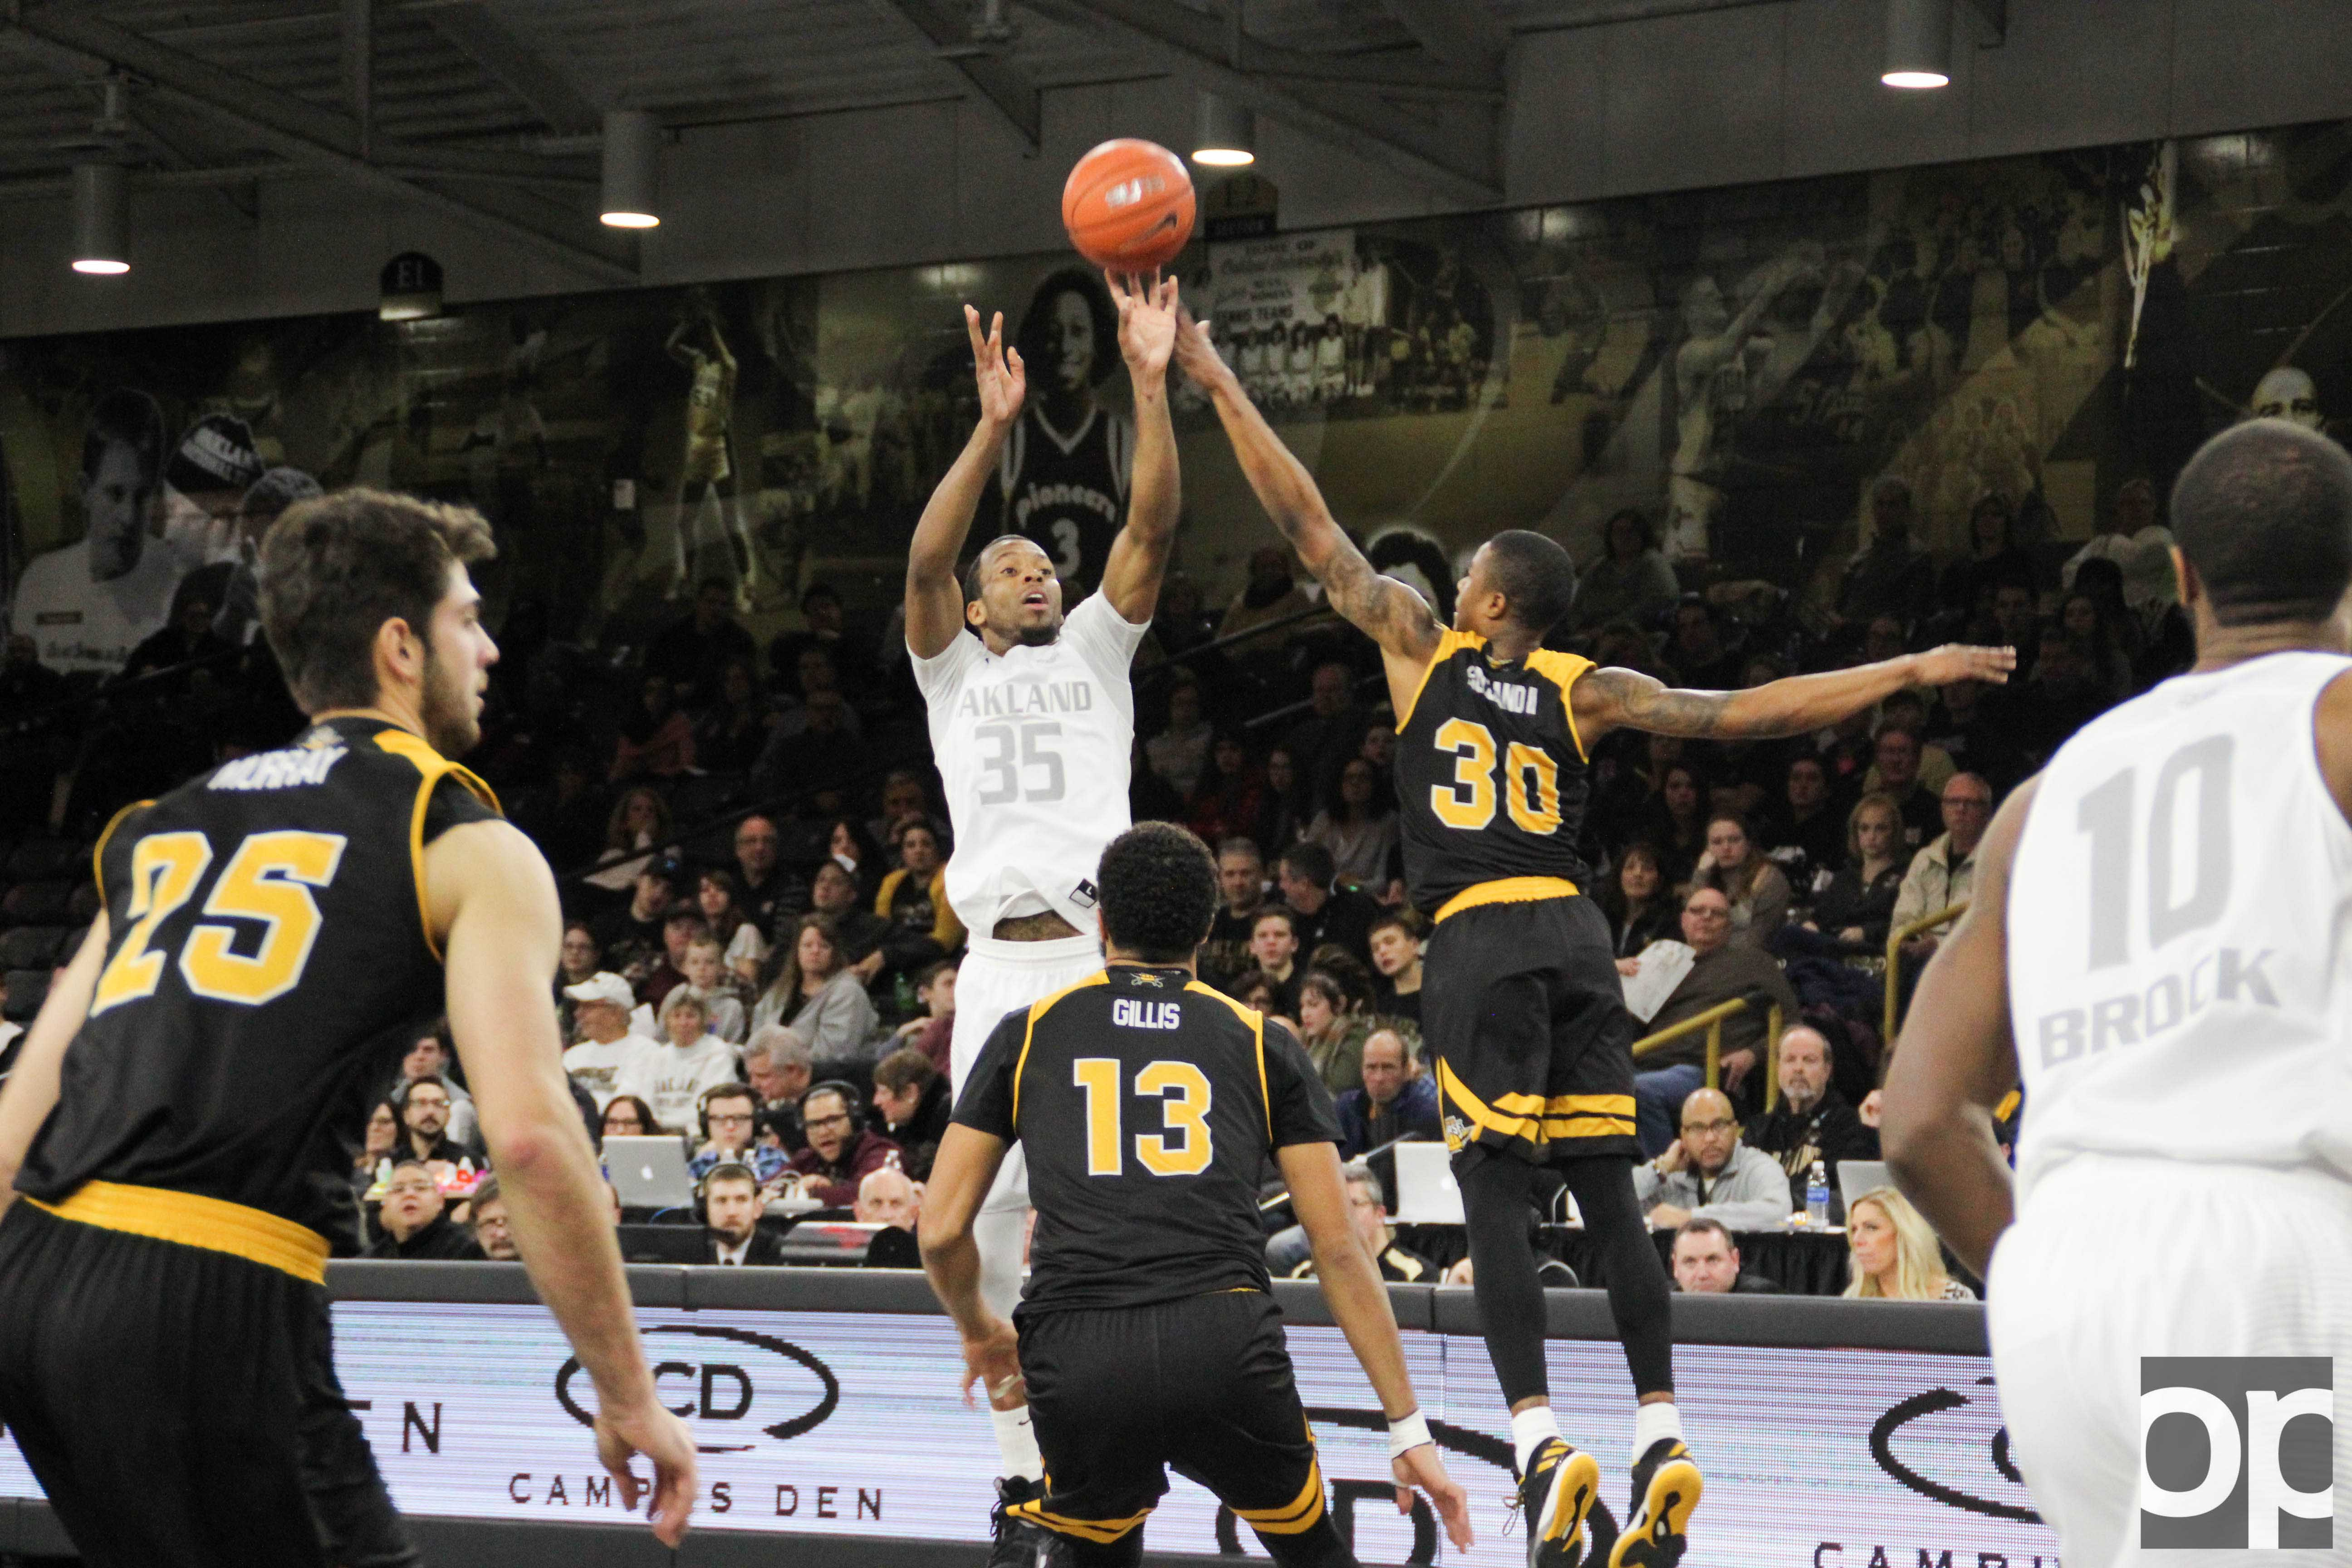 Scoring 21 points for the Golden Grizzlies, Martez Walker led the team to its 76-65 win over Northern Kentucky University.